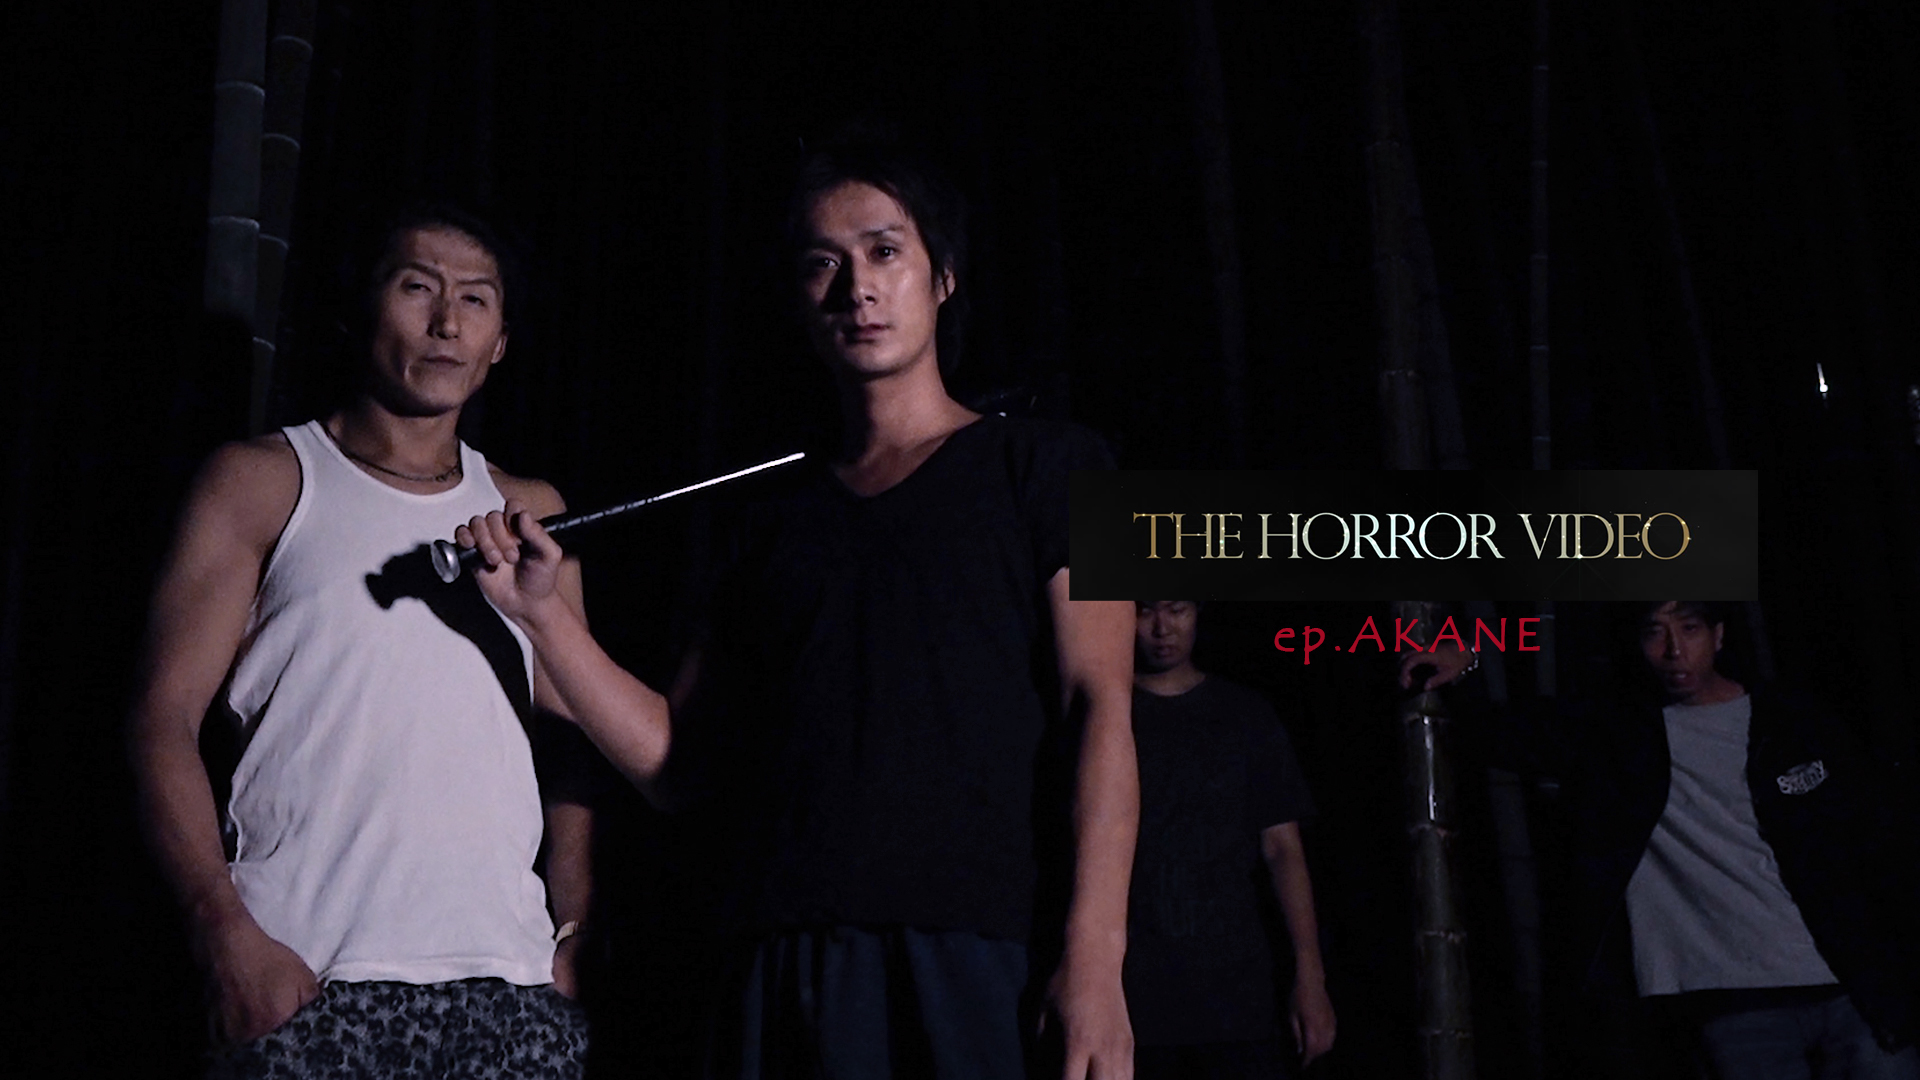 THE HORROR VIDEO ep.3